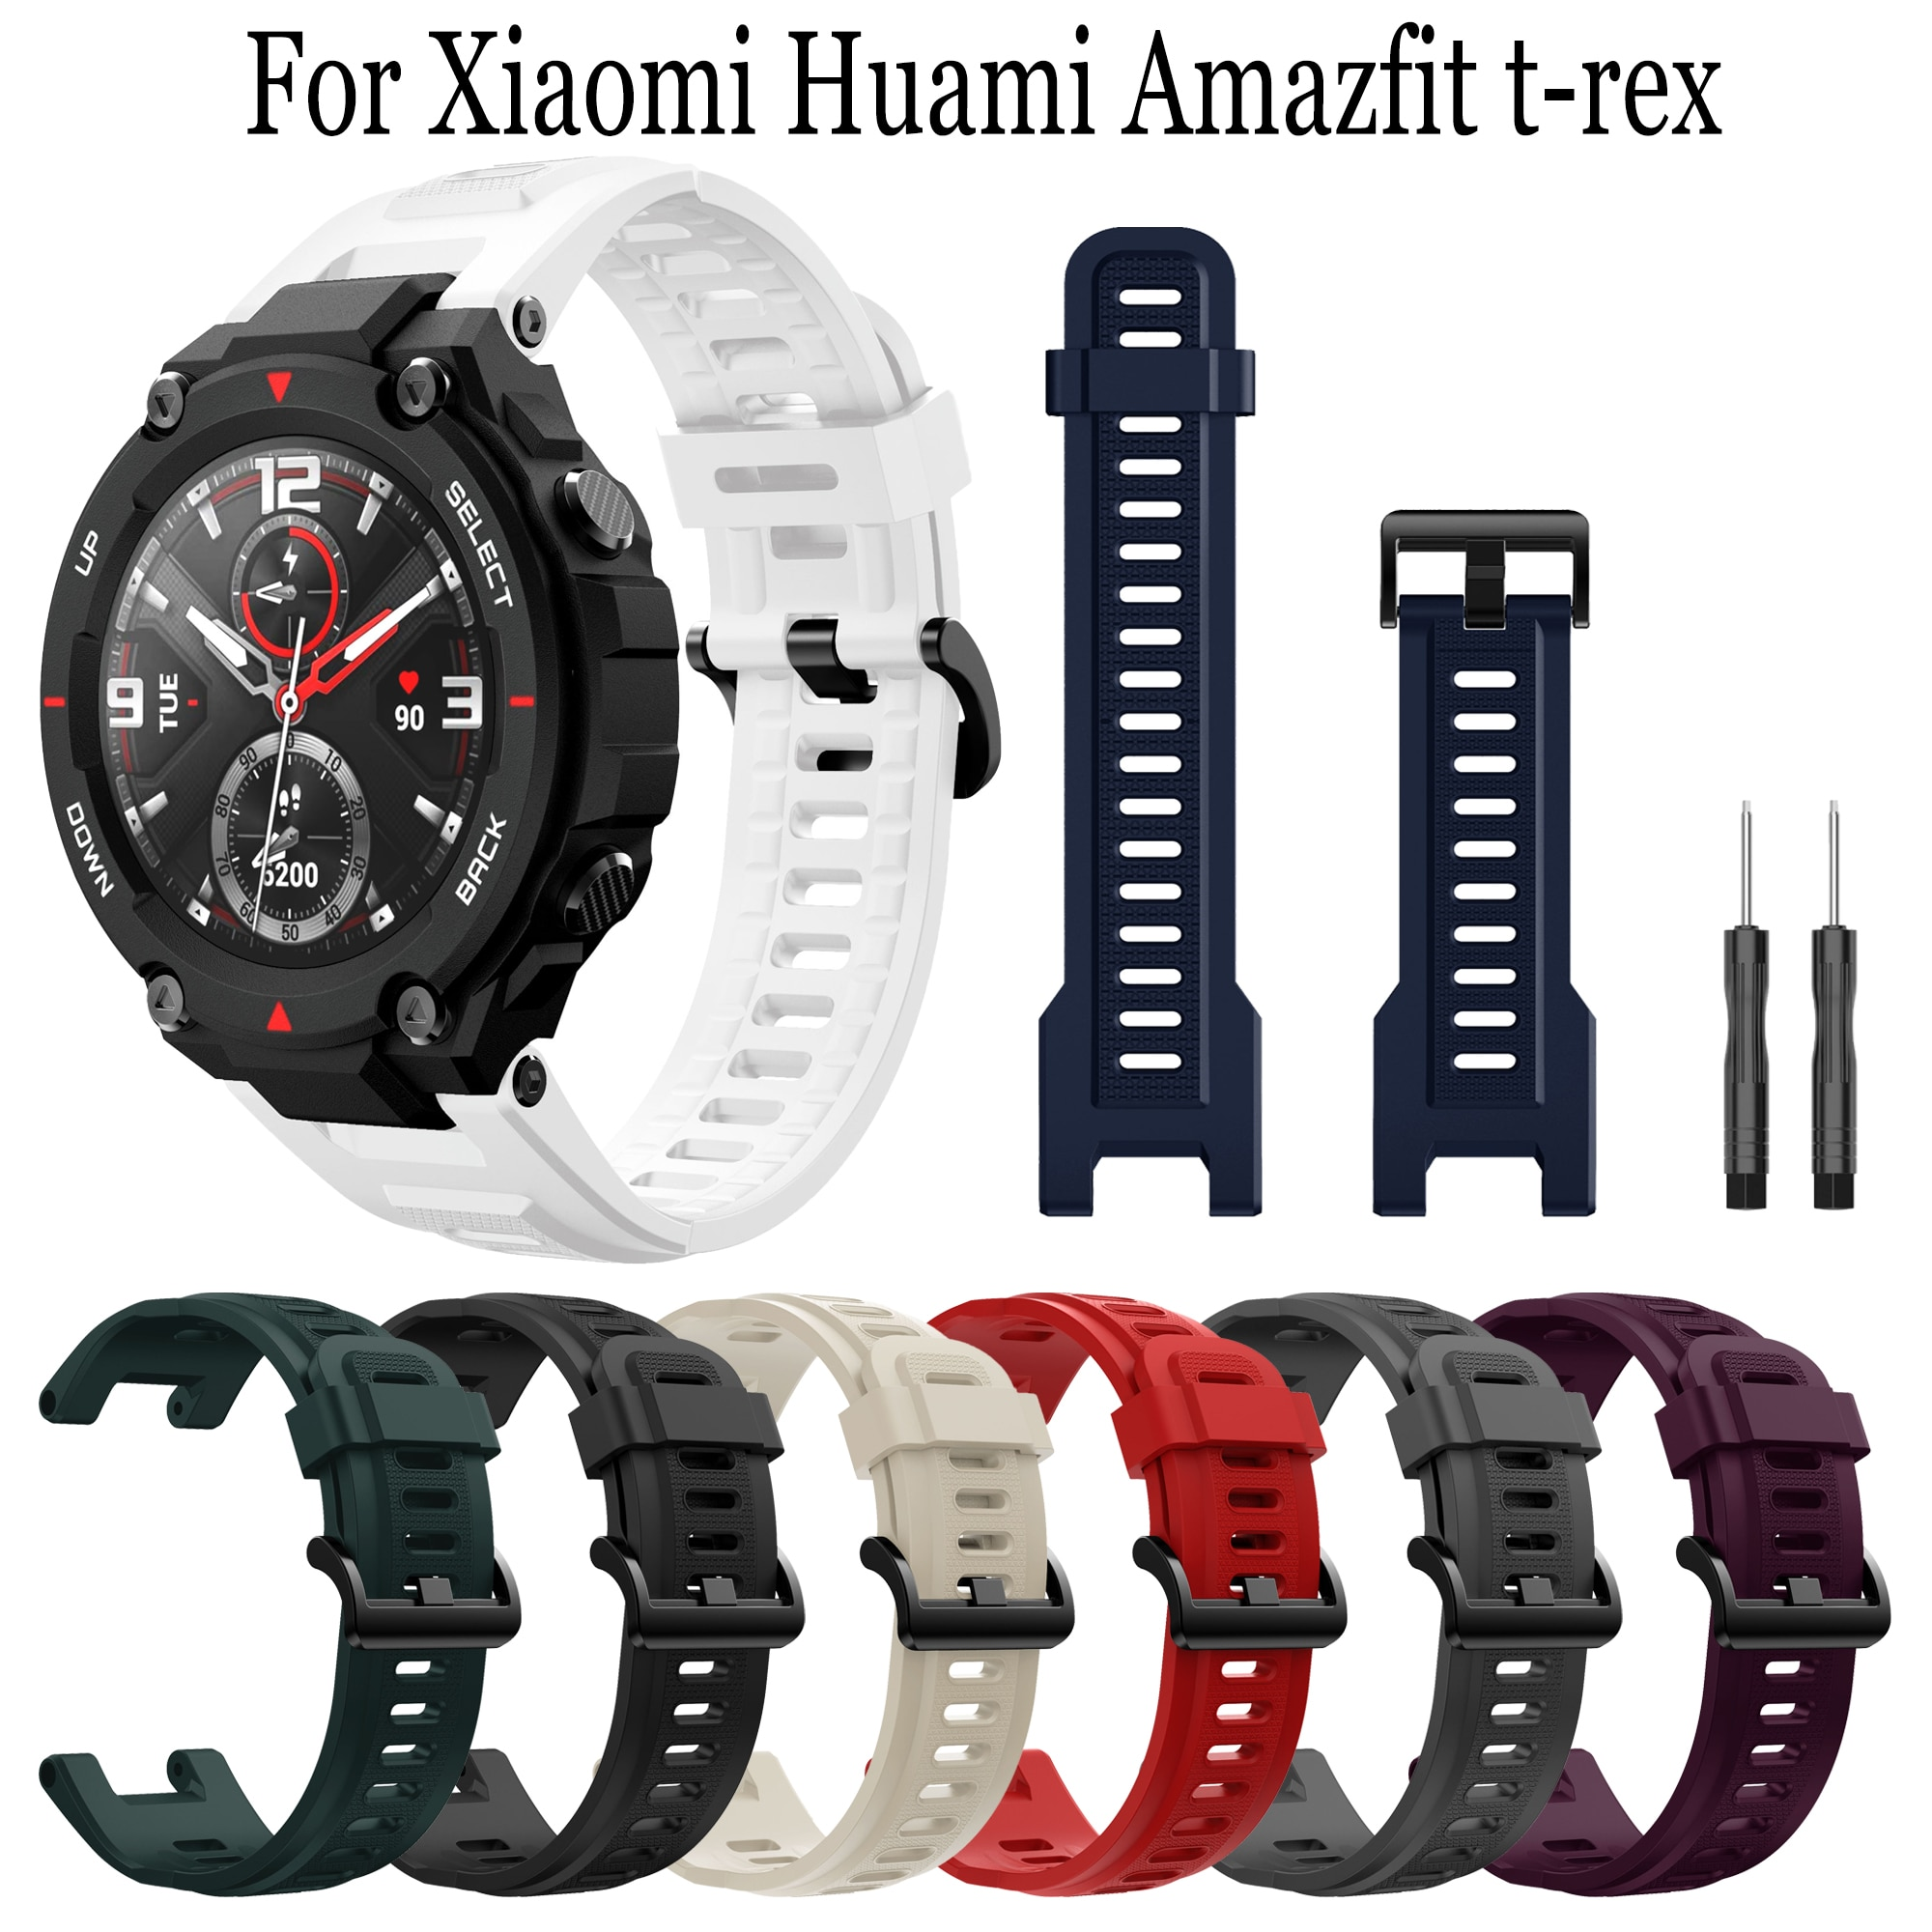 smart watch band for amazfit t rex pro silicone replacement bracelet accessories for amazfit t rex strap watchband with tool Silicone Wristband Straps Replacement Watchband Bracelet With Tool For Huami Amazfit T-Rex pro/T-Rex Smart Watch Adjustable band